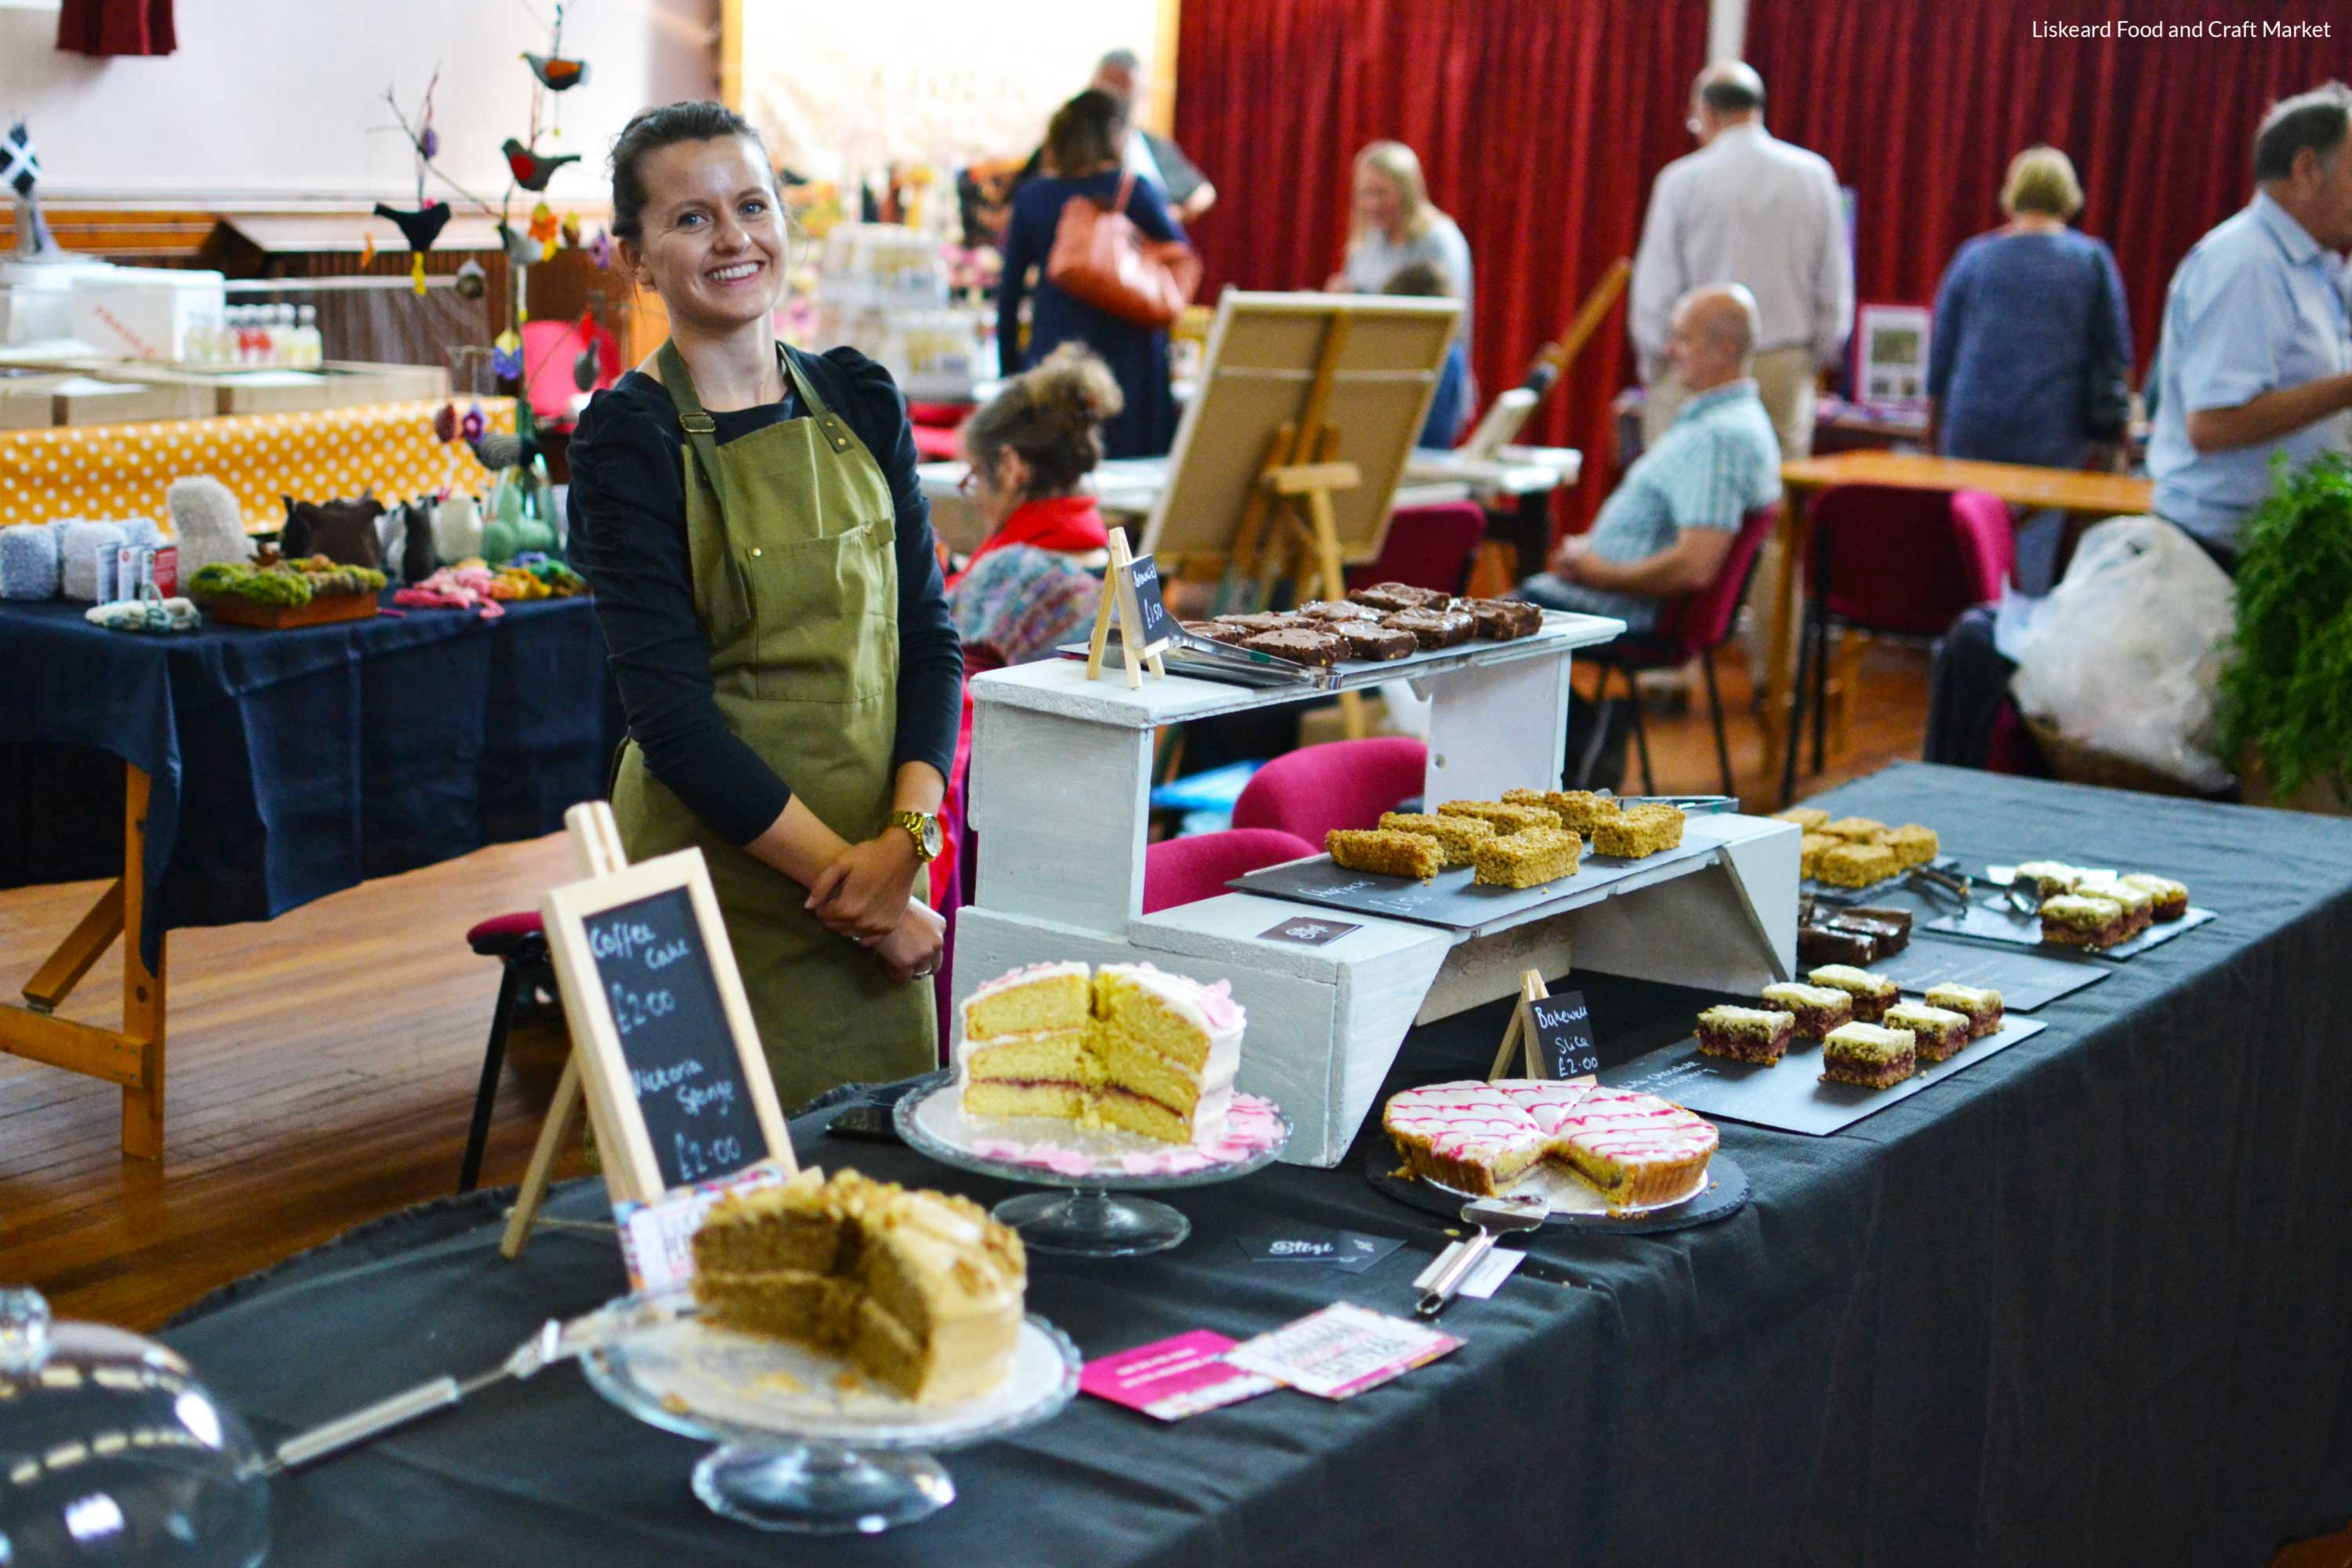 Liskeard Food and Craft Market